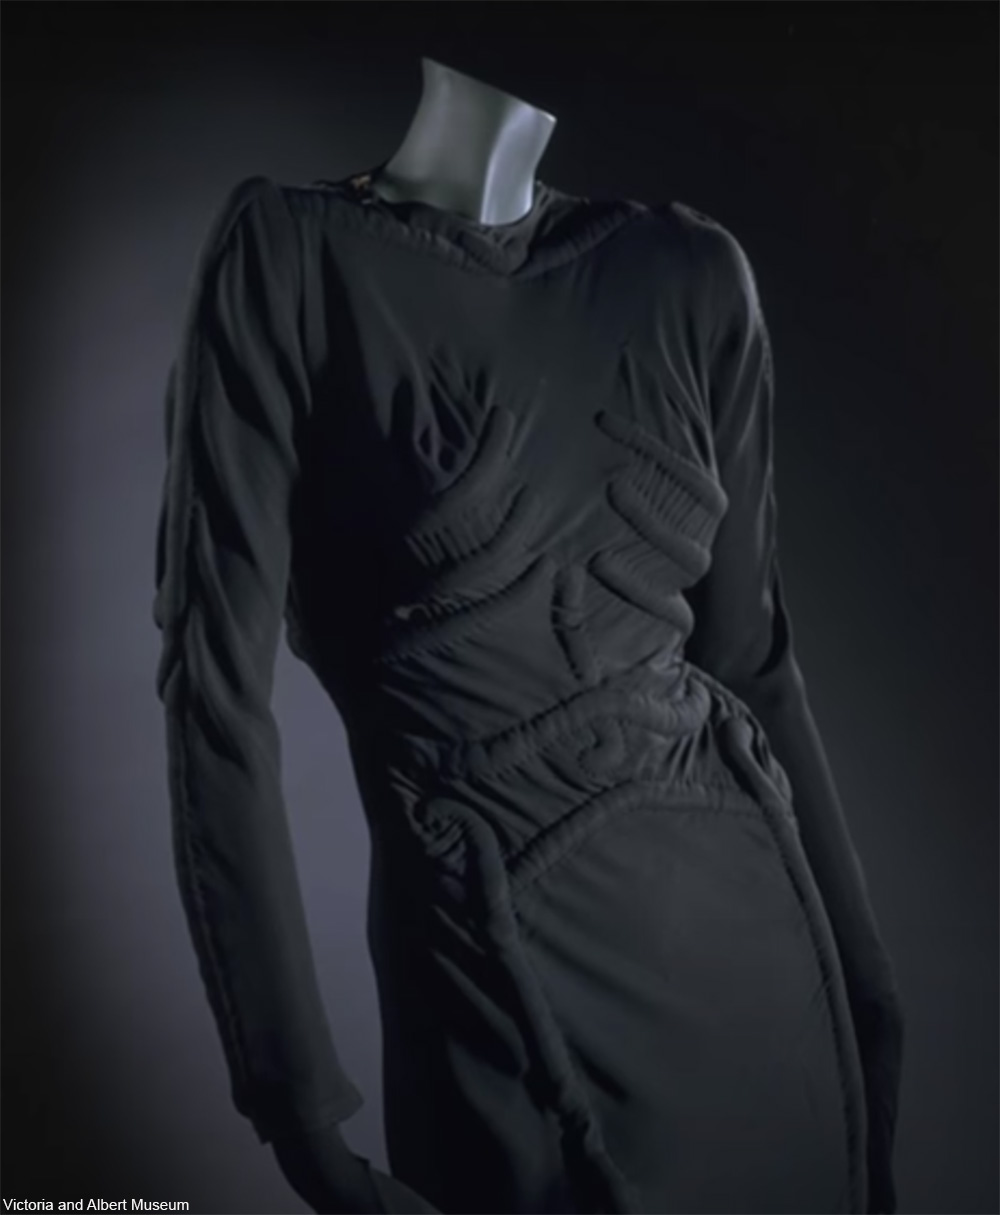 couture designs of Elsa Schiaparelli